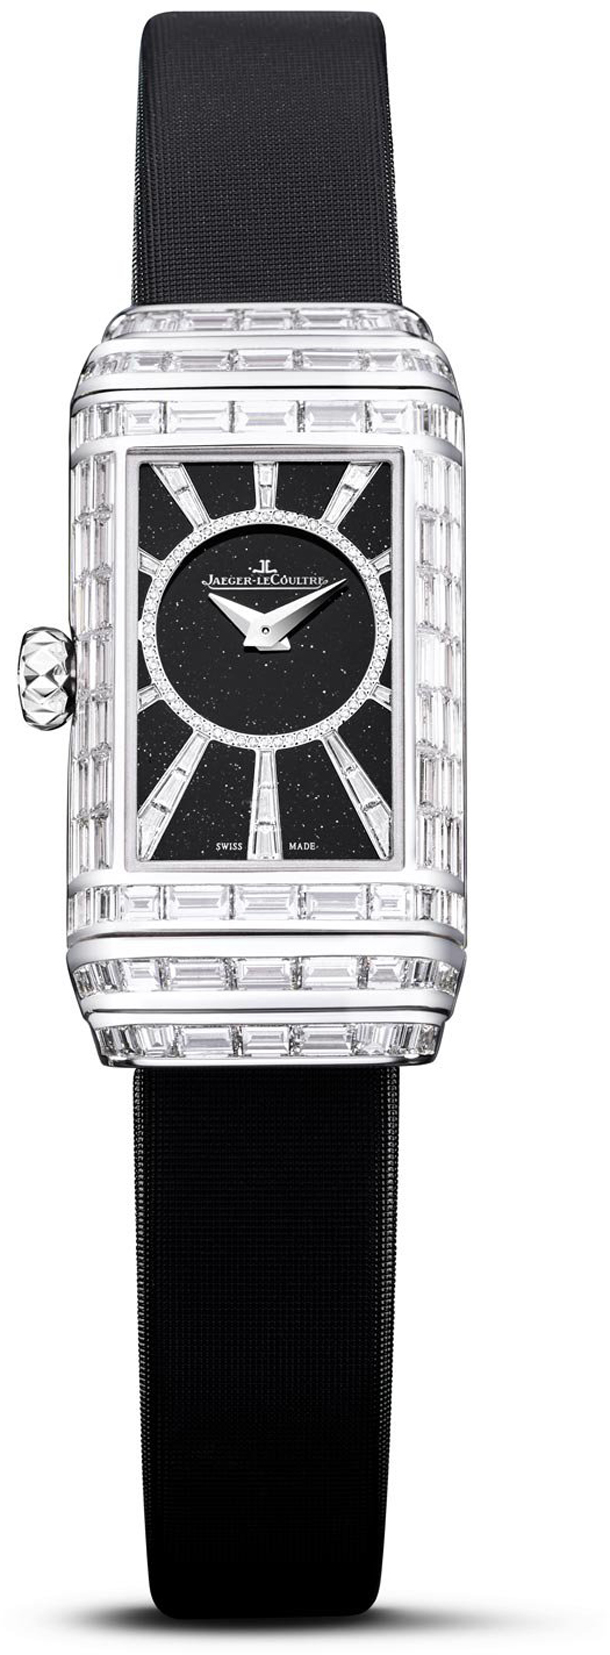 jaeger-lecoultre-reverso-one-high-jewellery-verso